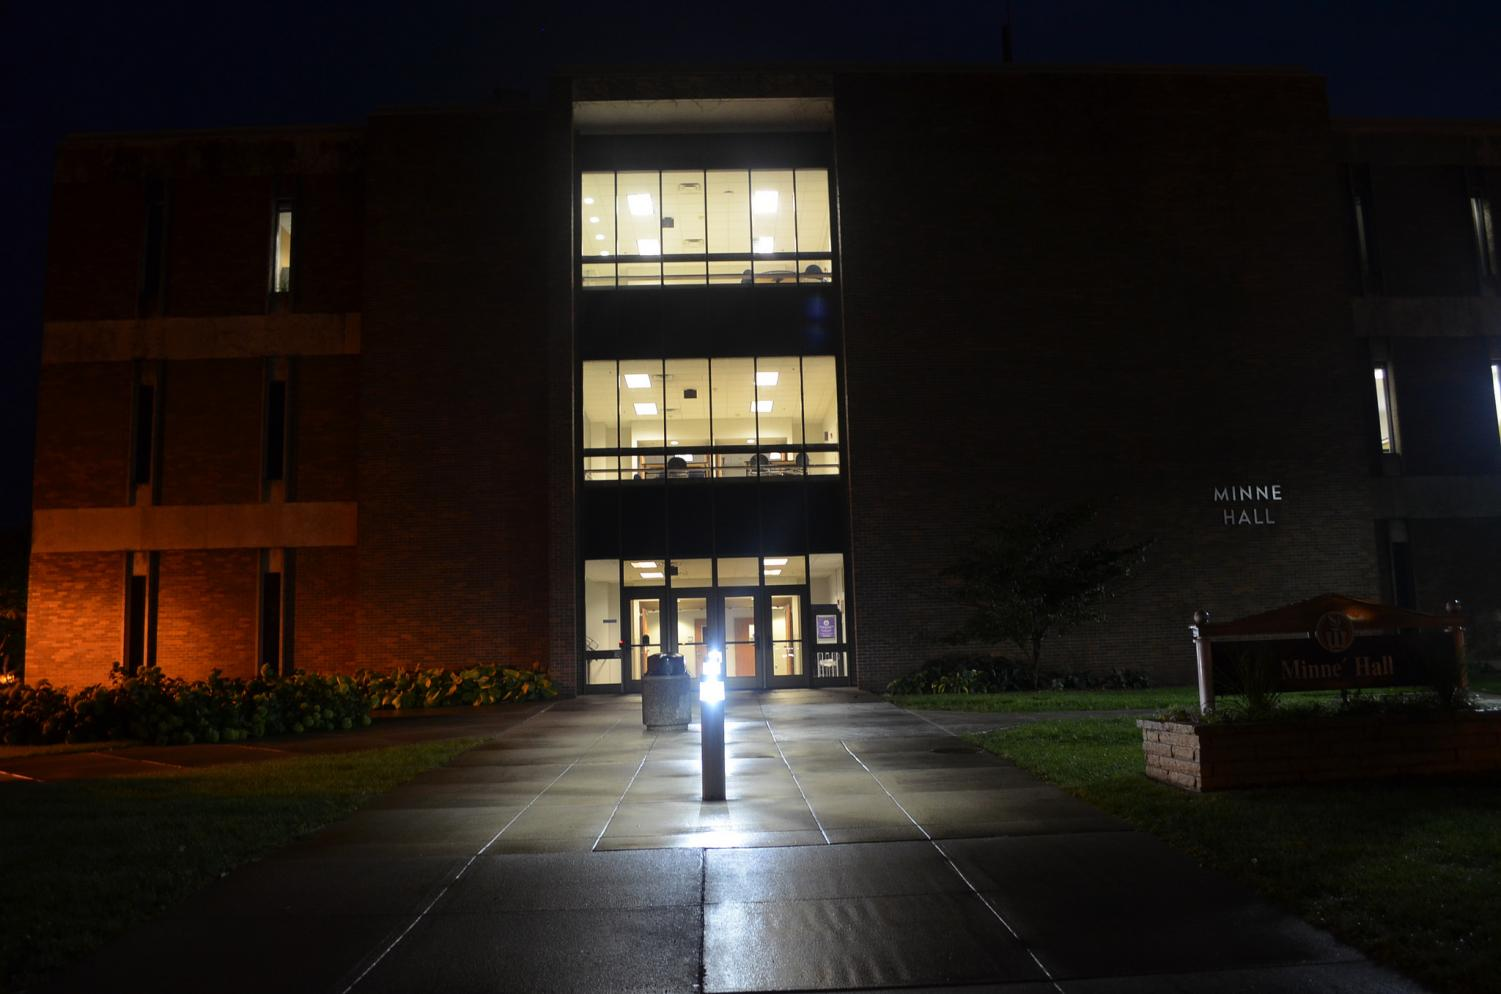 One of the offices in Minne Hall are included in the recent break-ins in the Winona State area. More recent break-ins include Maxwell and Gildemeister Halls, as well as multiple off-campus locations.